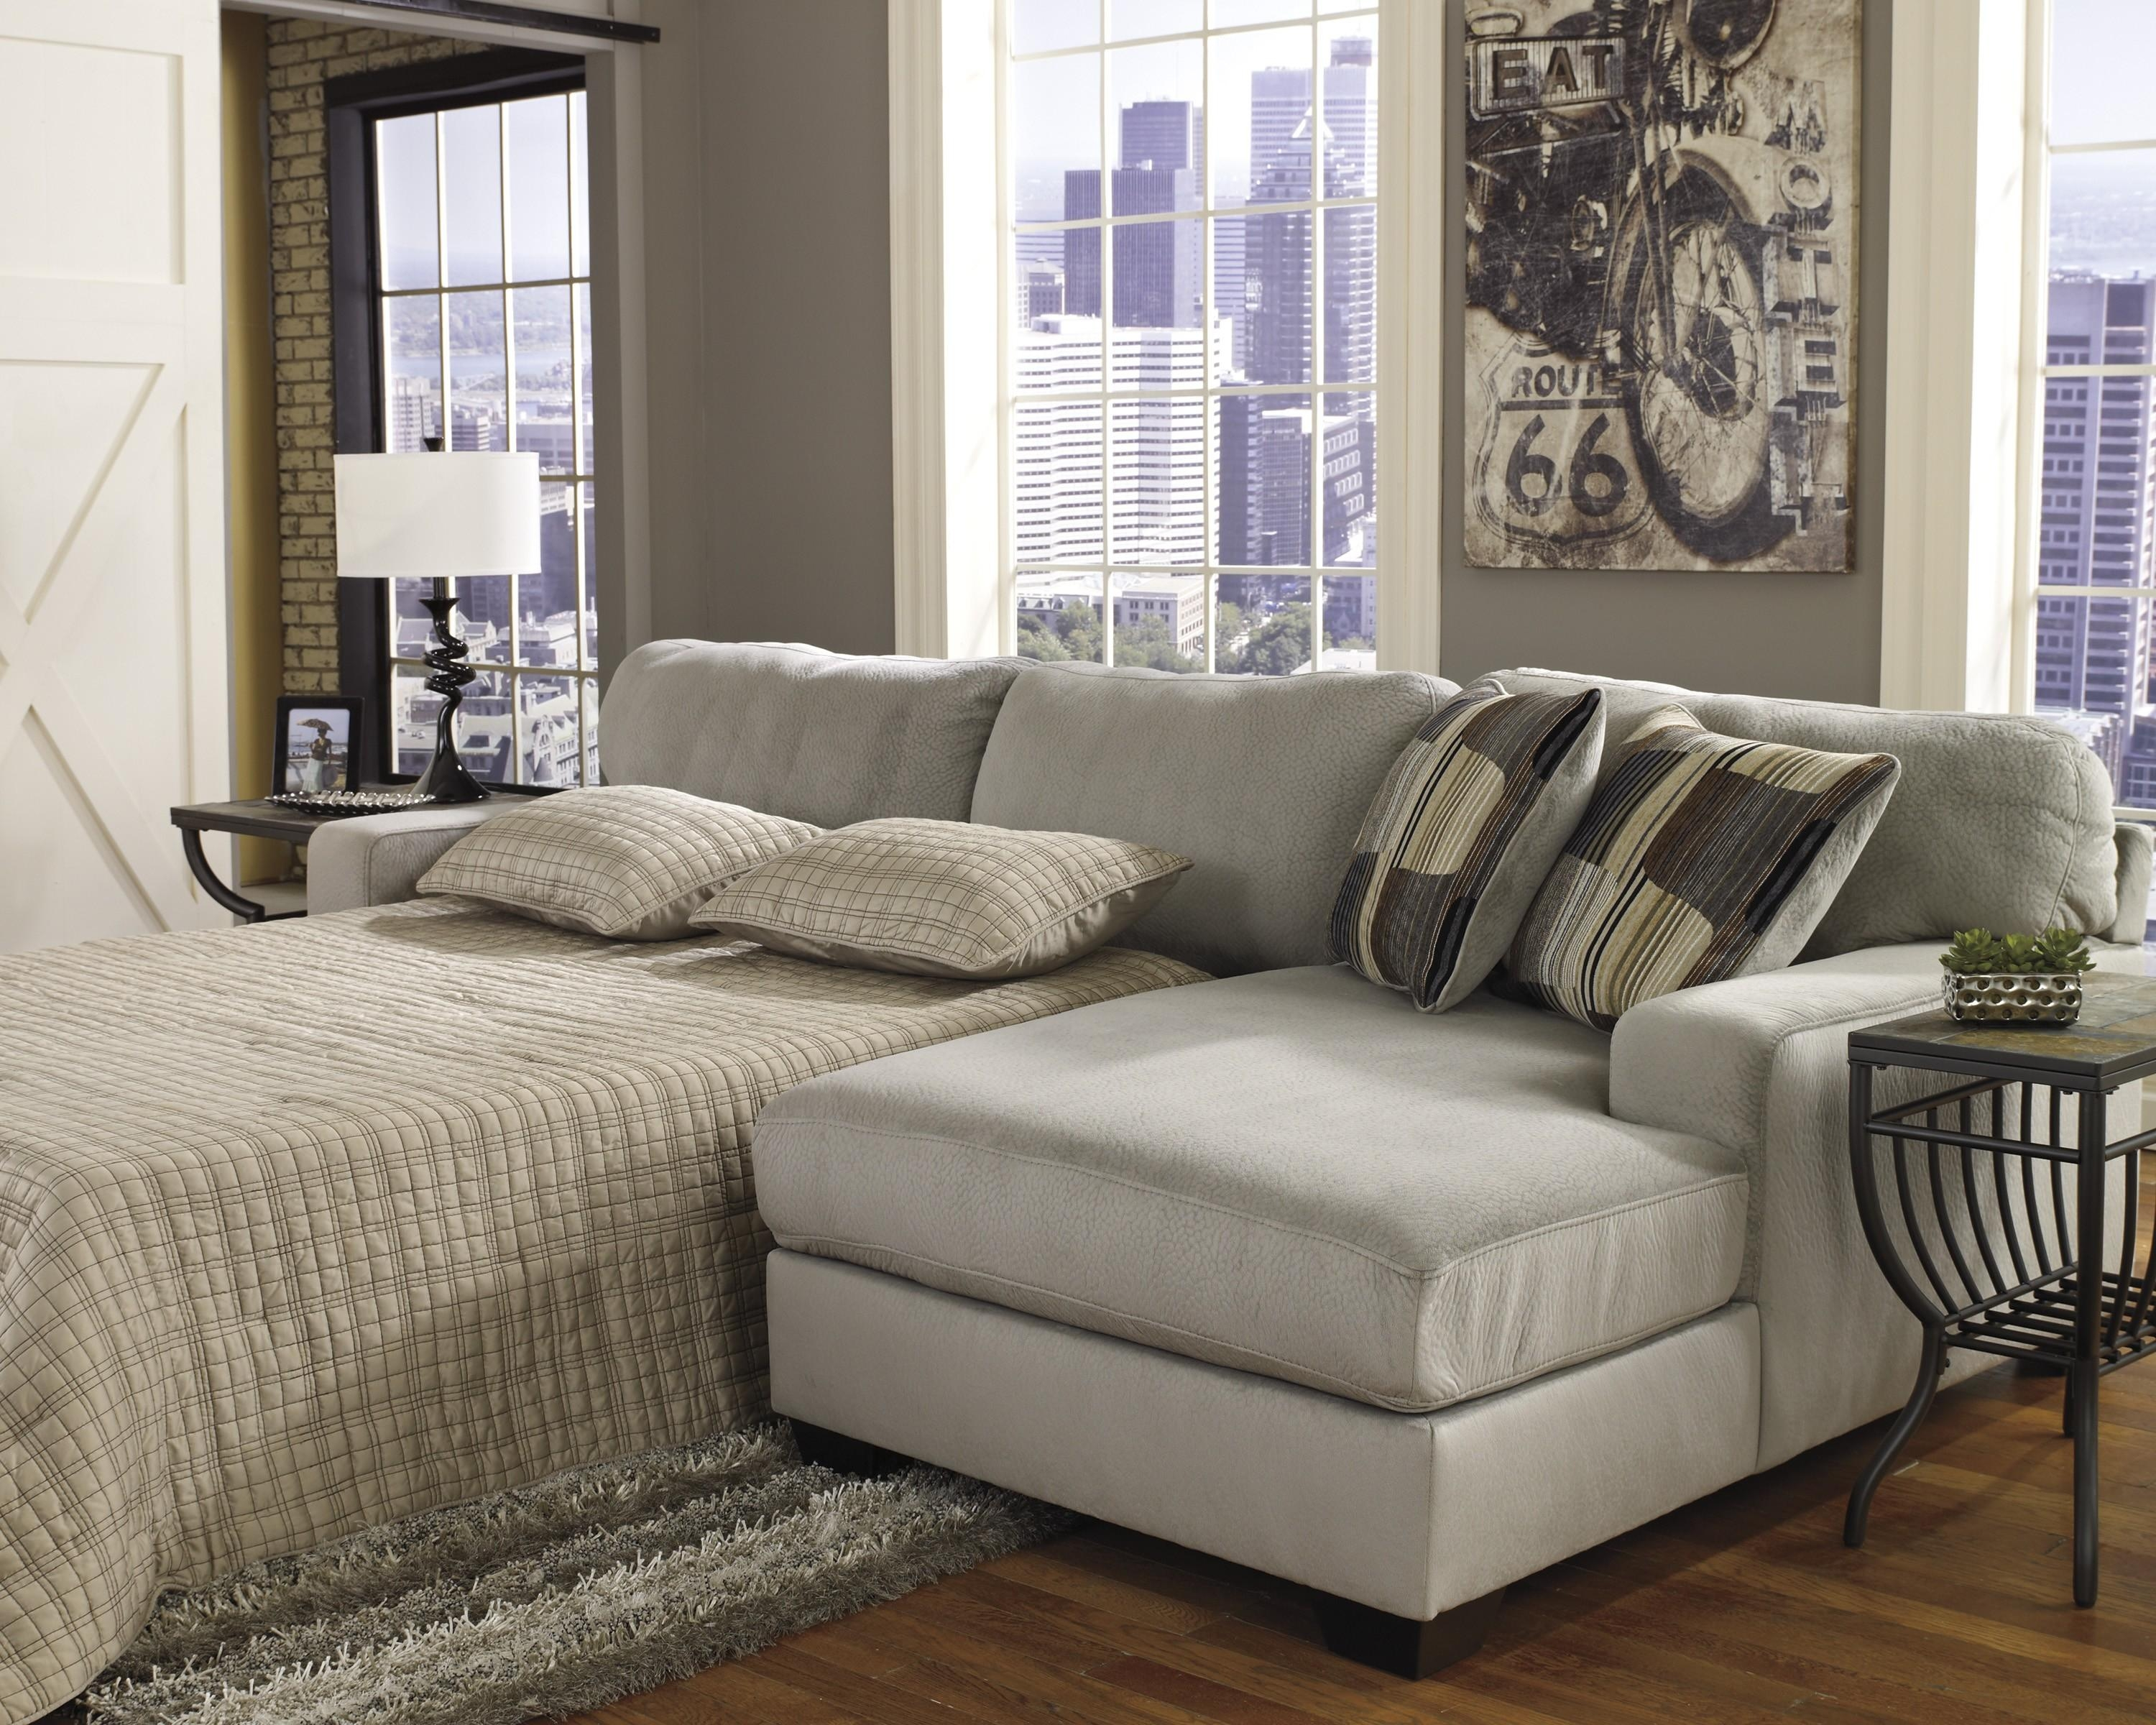 Awesome Sleeper Sofa Sectional Small Space 62 About Remodel Modern Inside Los Angeles Sleeper Sofas (View 14 of 20)